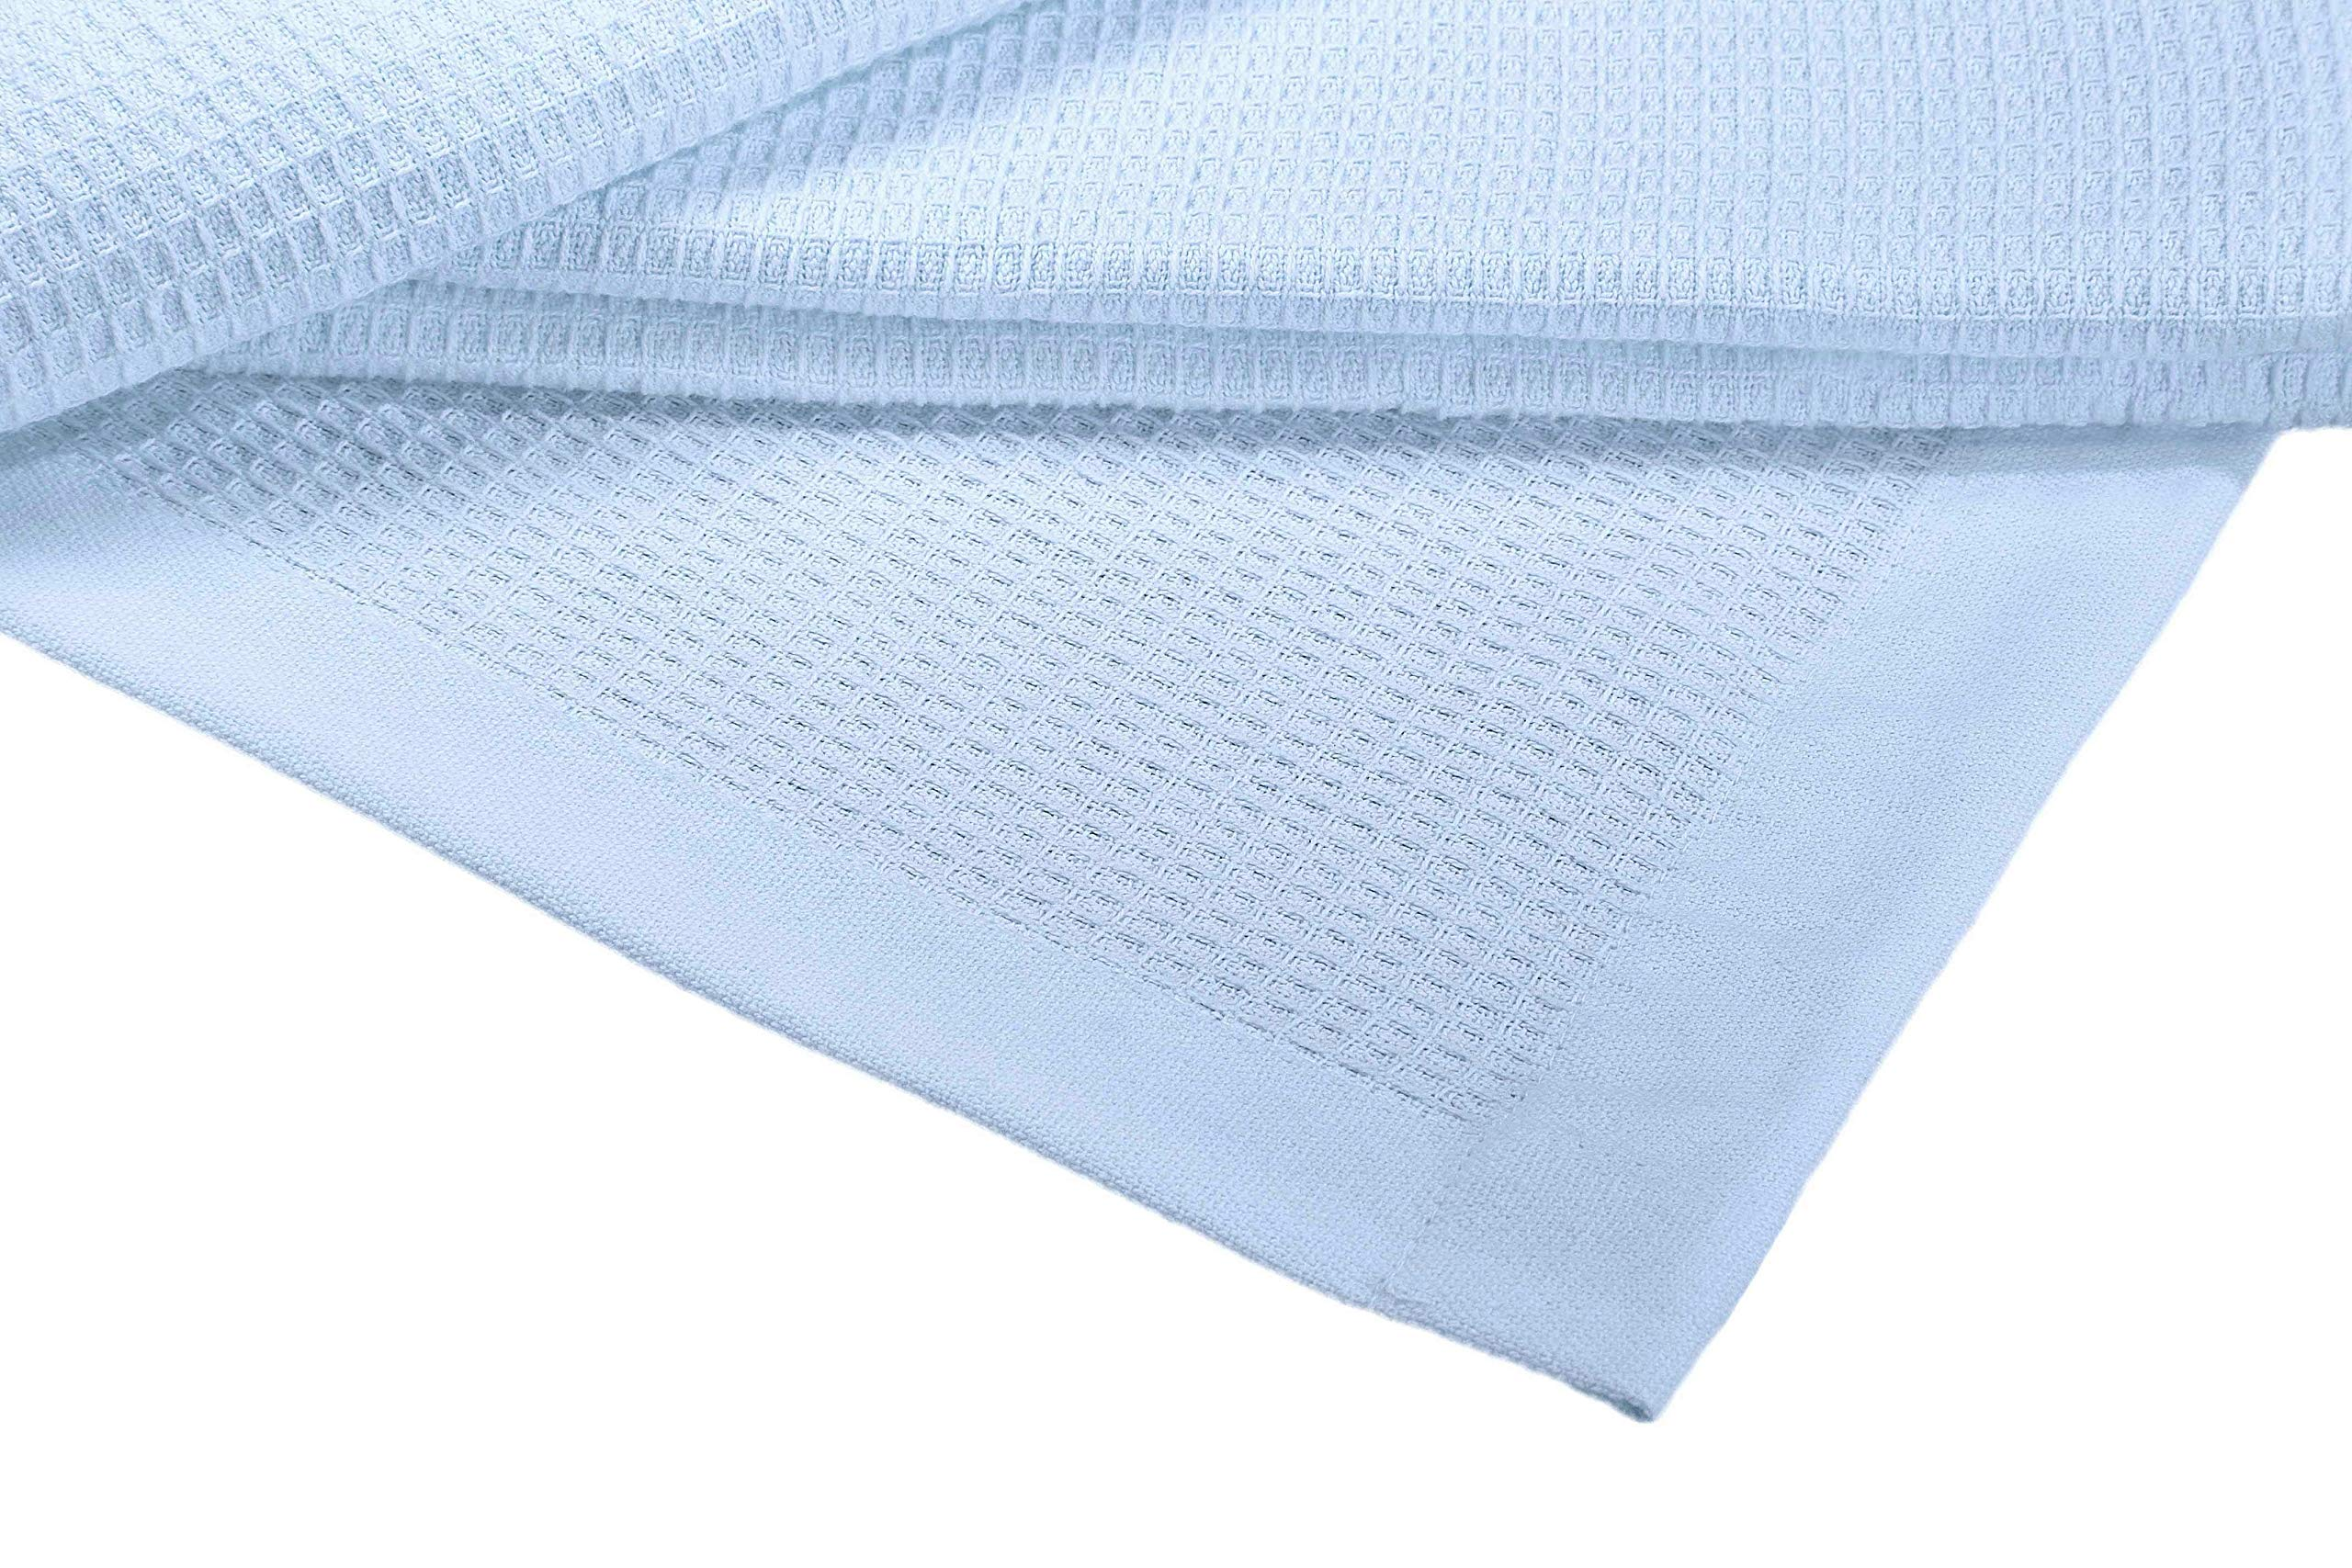 Crover Collection All Season Thermal Waffle Cotton Twin Blanket 66''x90'' Cashmere Blue with Deep Plain Edge Border Durable and Soft